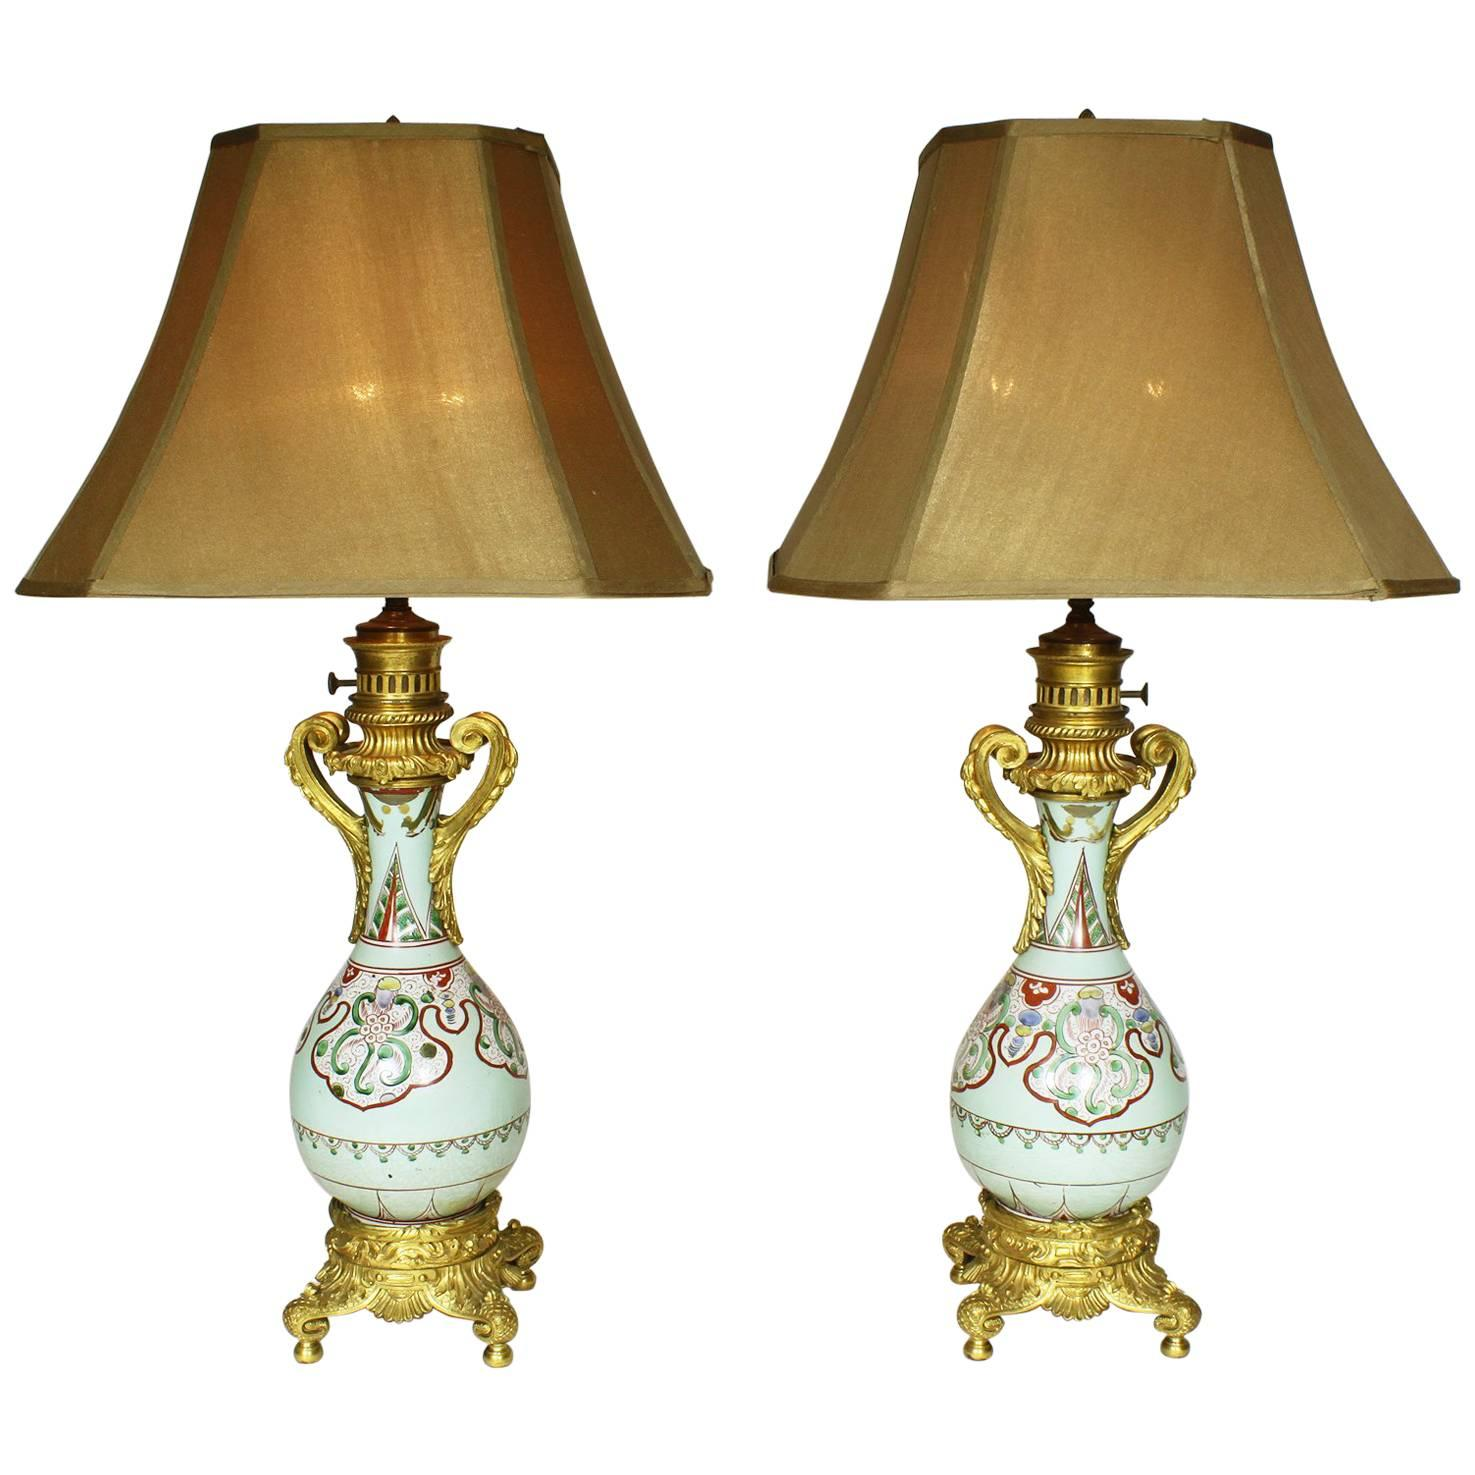 Fine Pair of 19th Century Ormolu-Mounted Chinese Porcelain Vases Oil Lamps